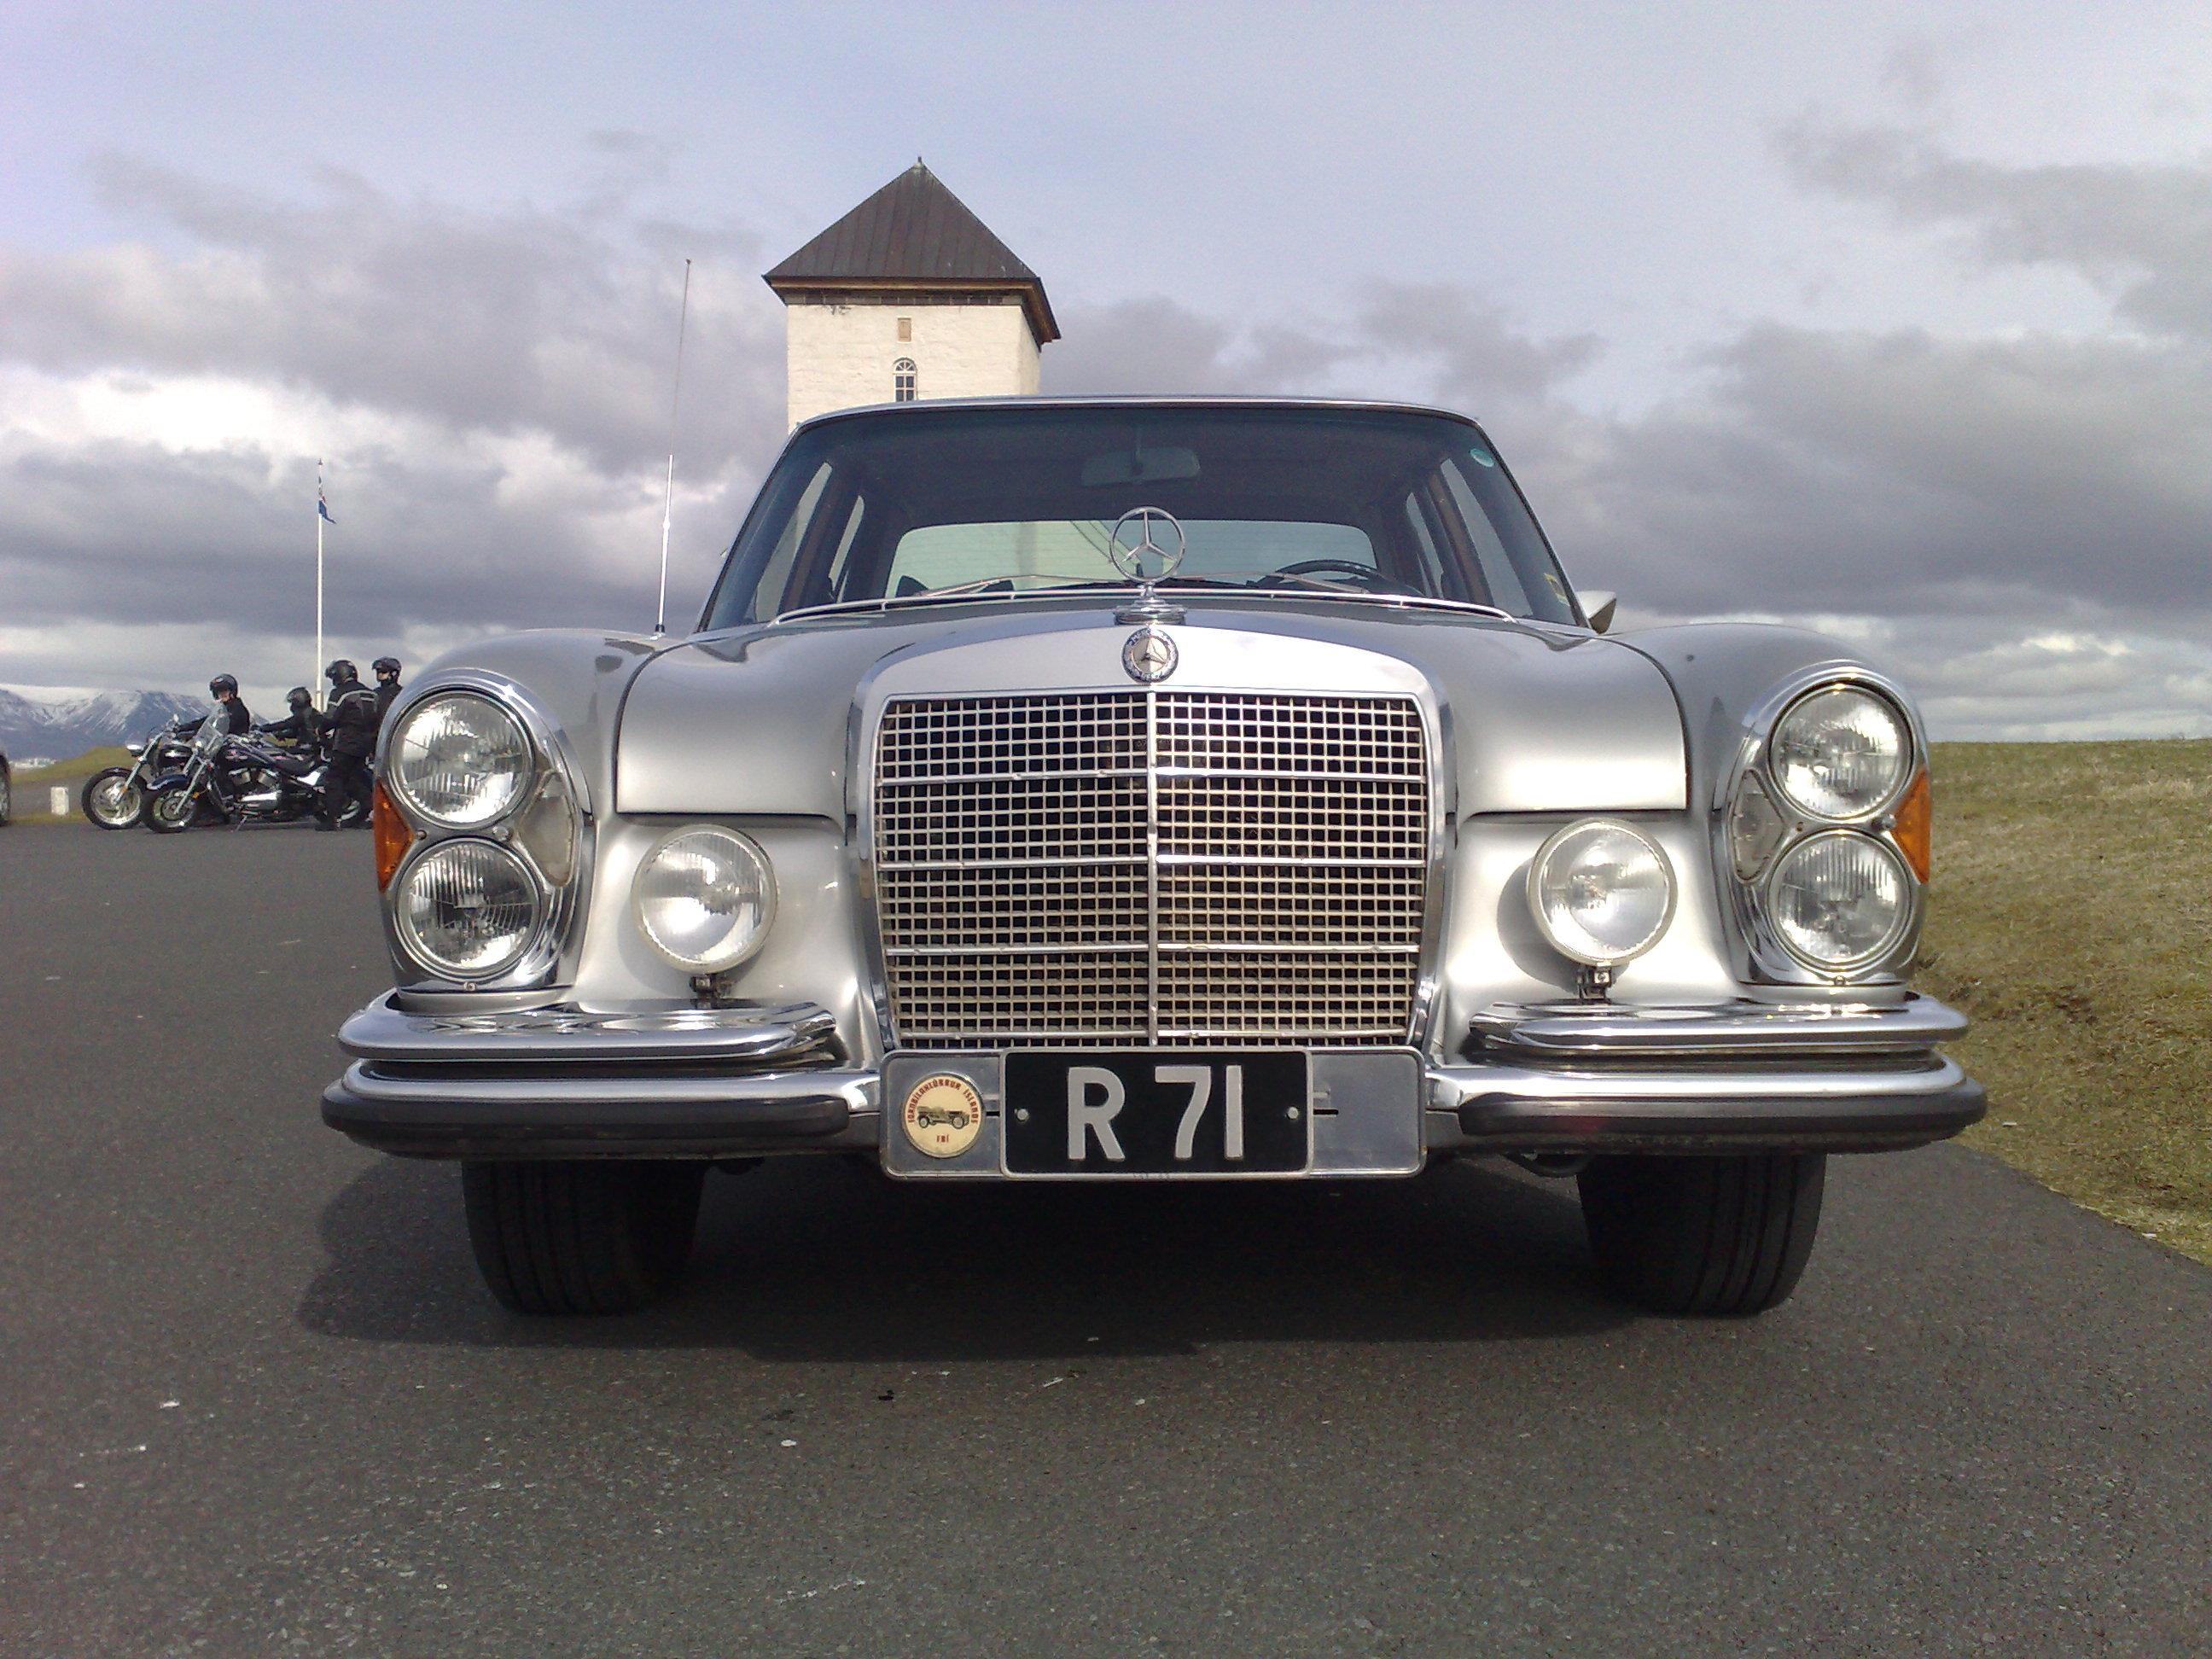 Gmg iceland 39 s 1972 mercedes benz 280se in for 1972 mercedes benz